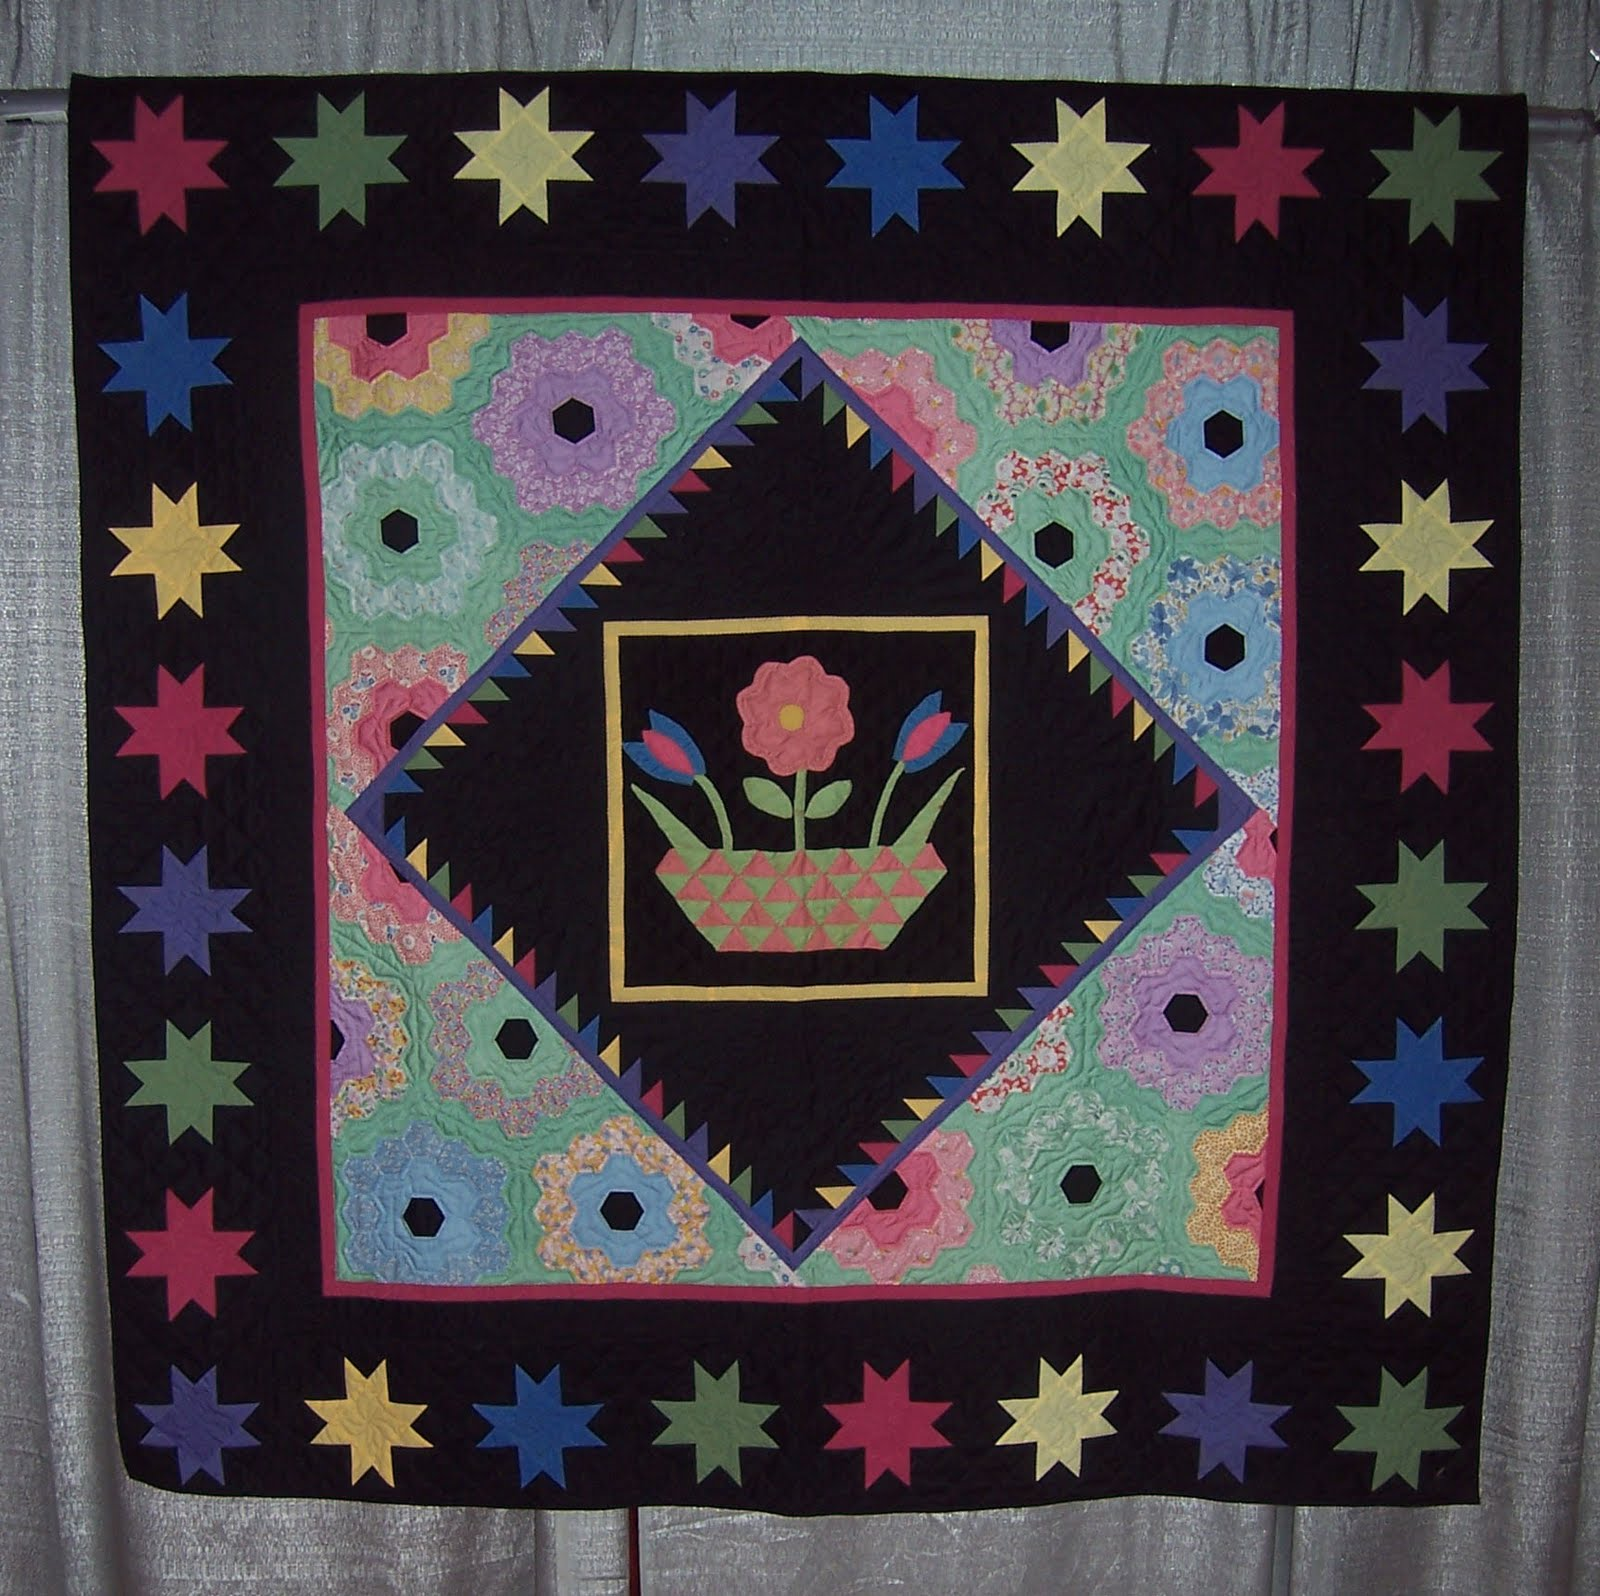 salvatierra black single women The land also produces building materials such as tezontle and black salvatierra, celaya and san most items made in guanajuato are single-colored.